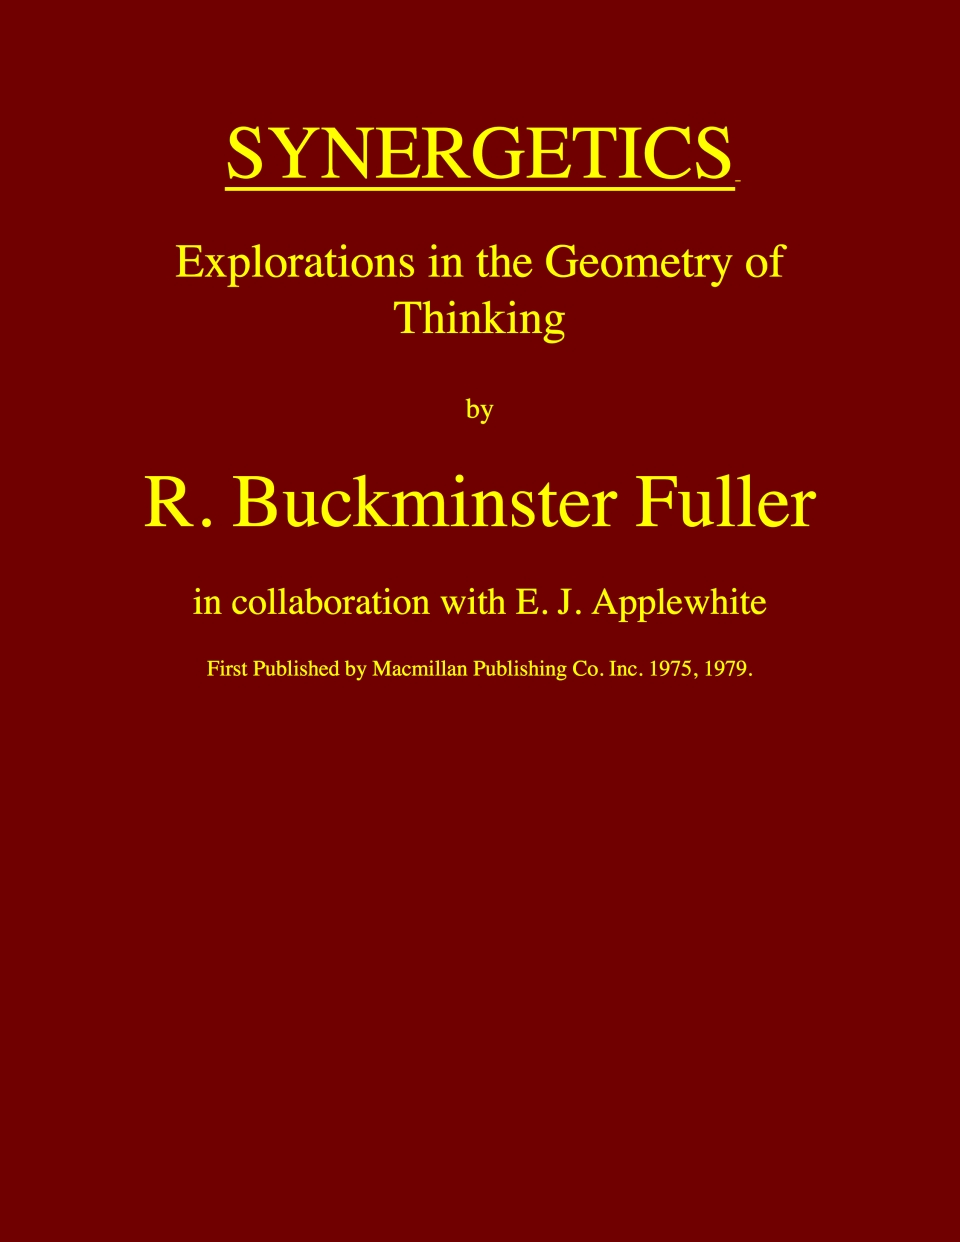 BuckminsterFuller-Synergetics